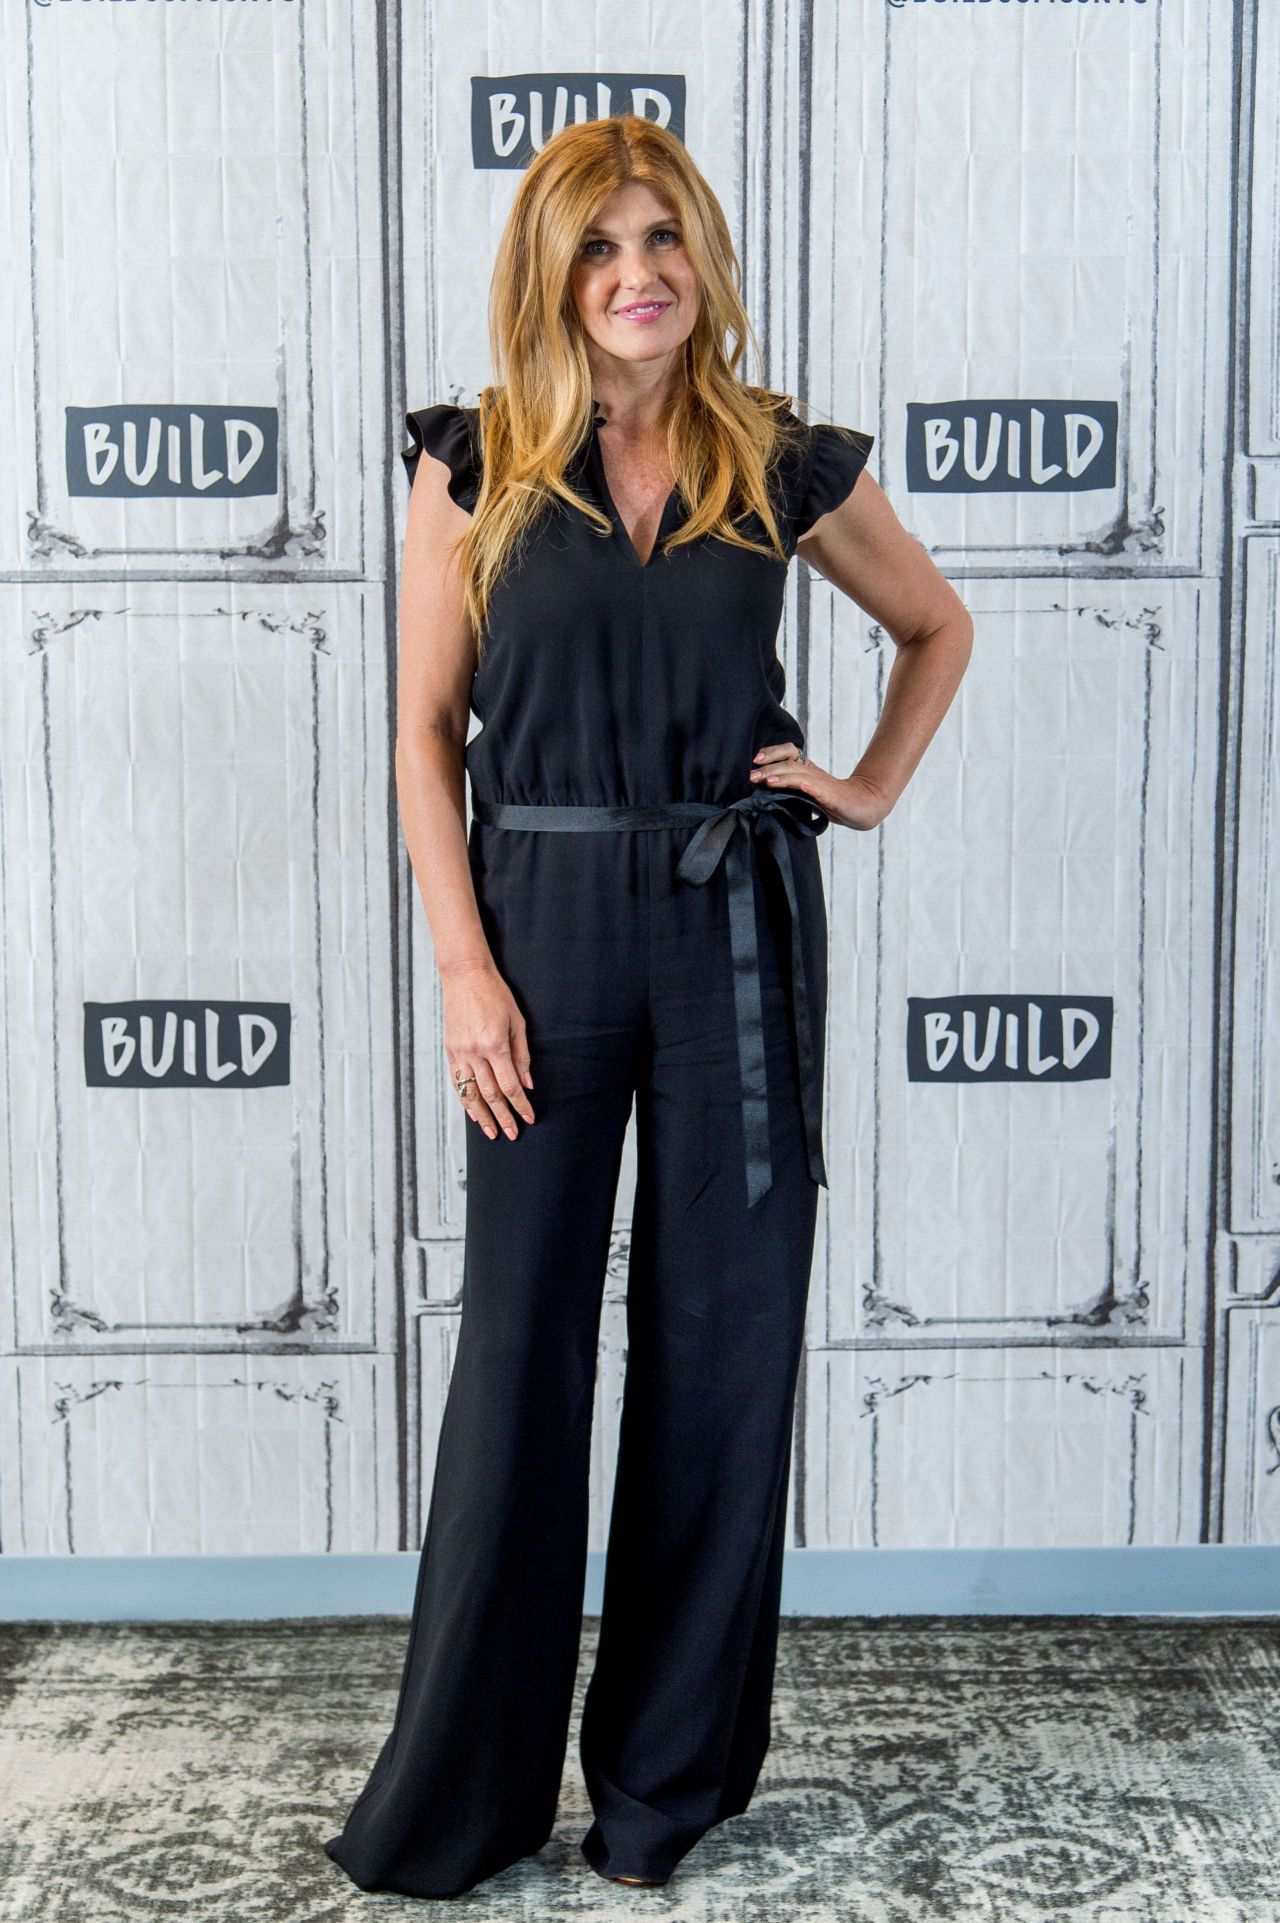 Connie britton beatriz at dinner panel in new york city - 2019 year